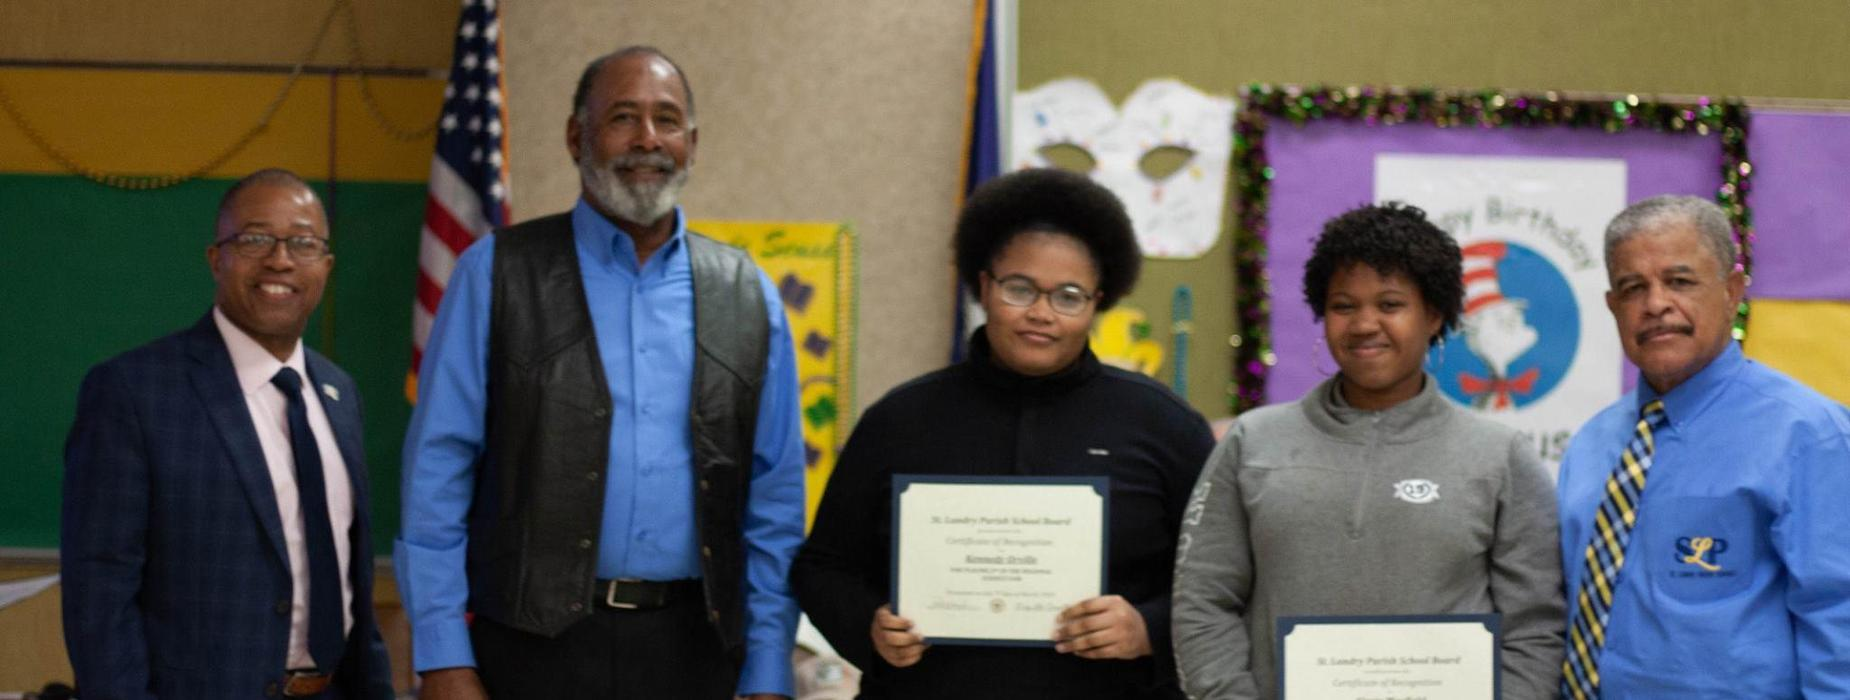 superintendent gives recognition